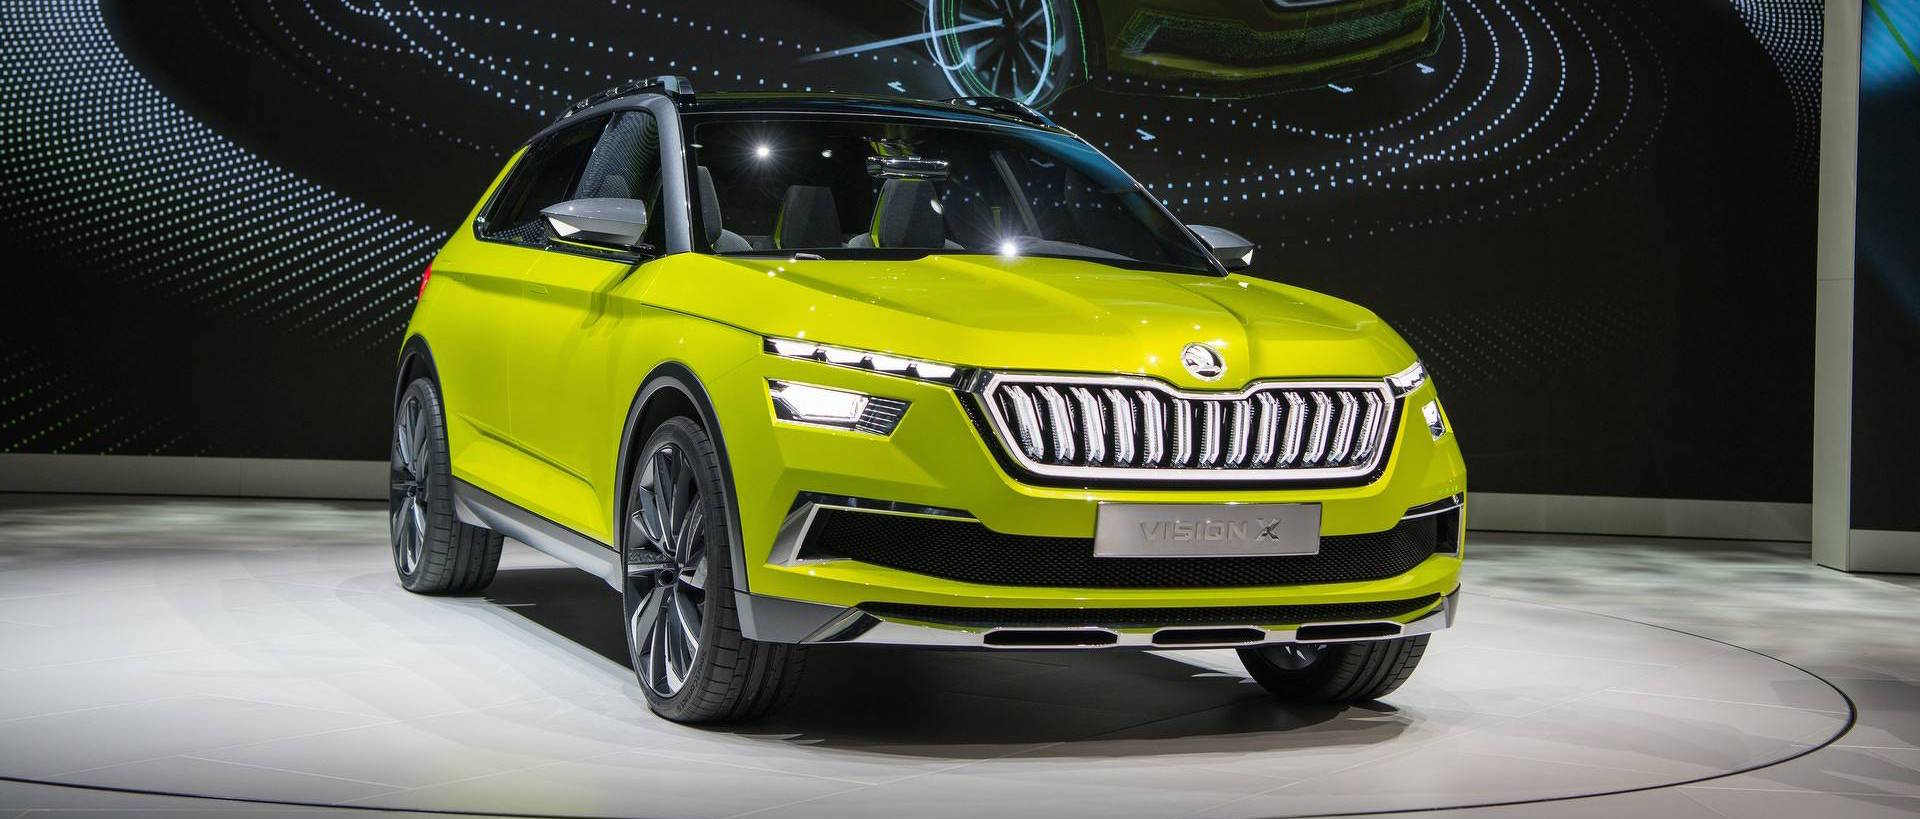 Skoda small SUV (production-spec Vision X) interior details revealed